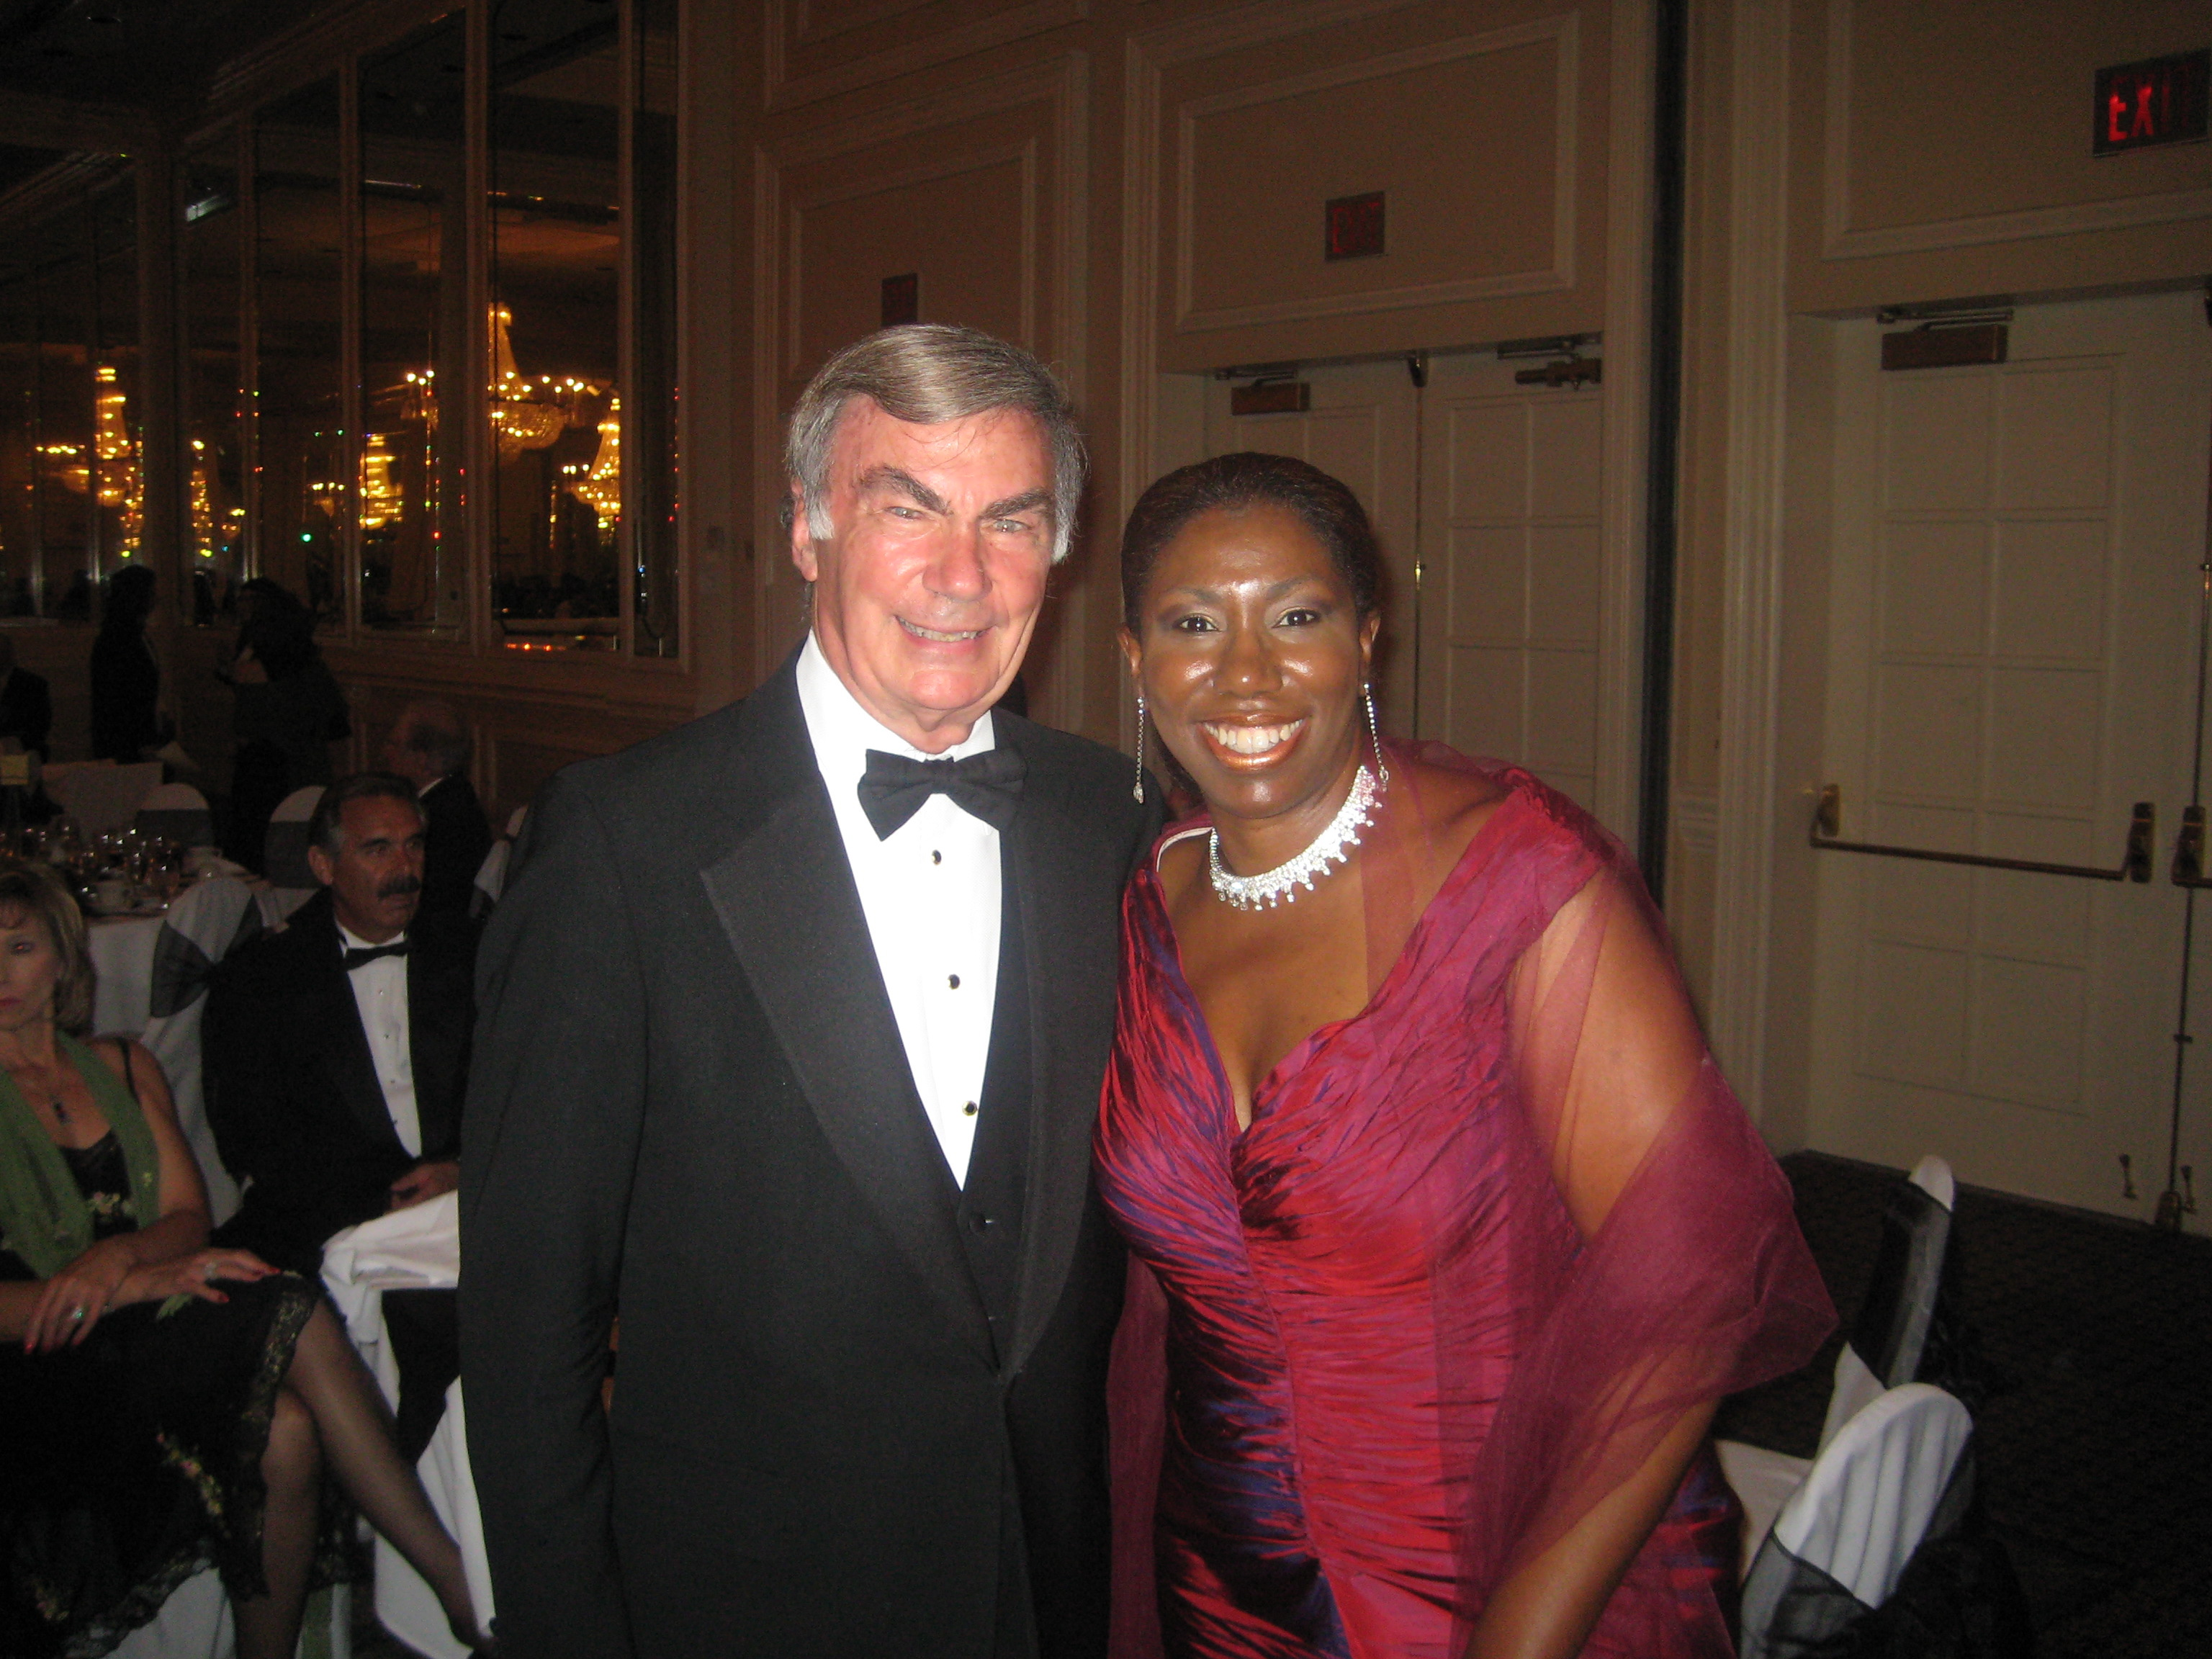 Sam Donaldson at Cedar Rapids Gala